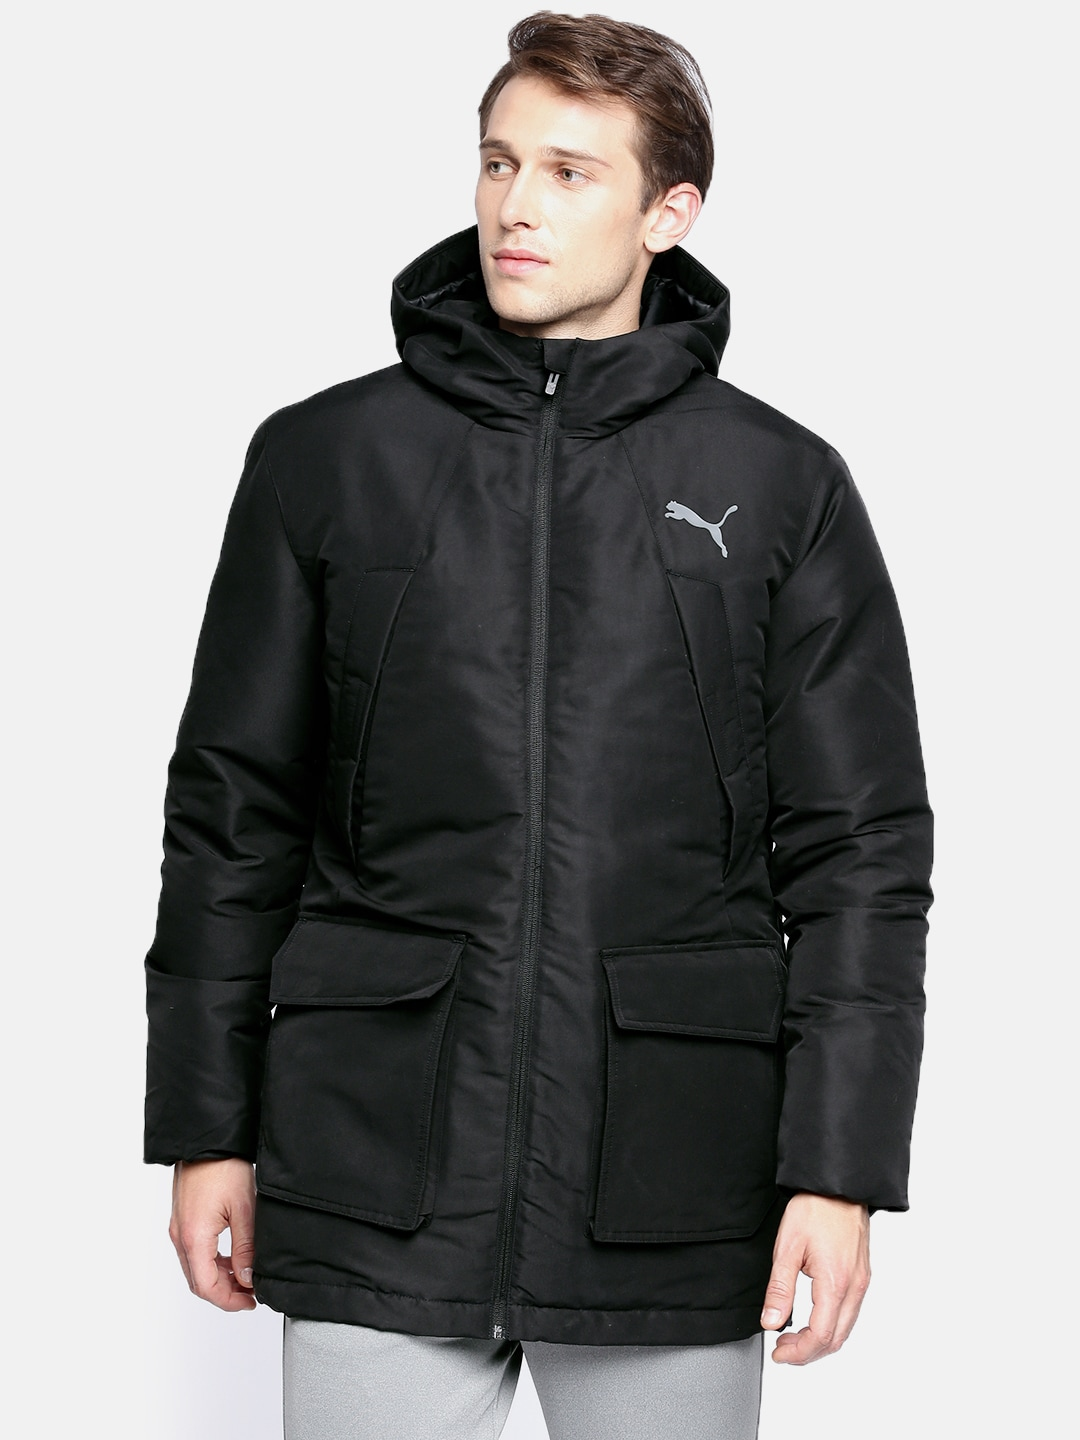 473118f8f Puma Men Black Solid warmCELL SHIELD Padded Jacket